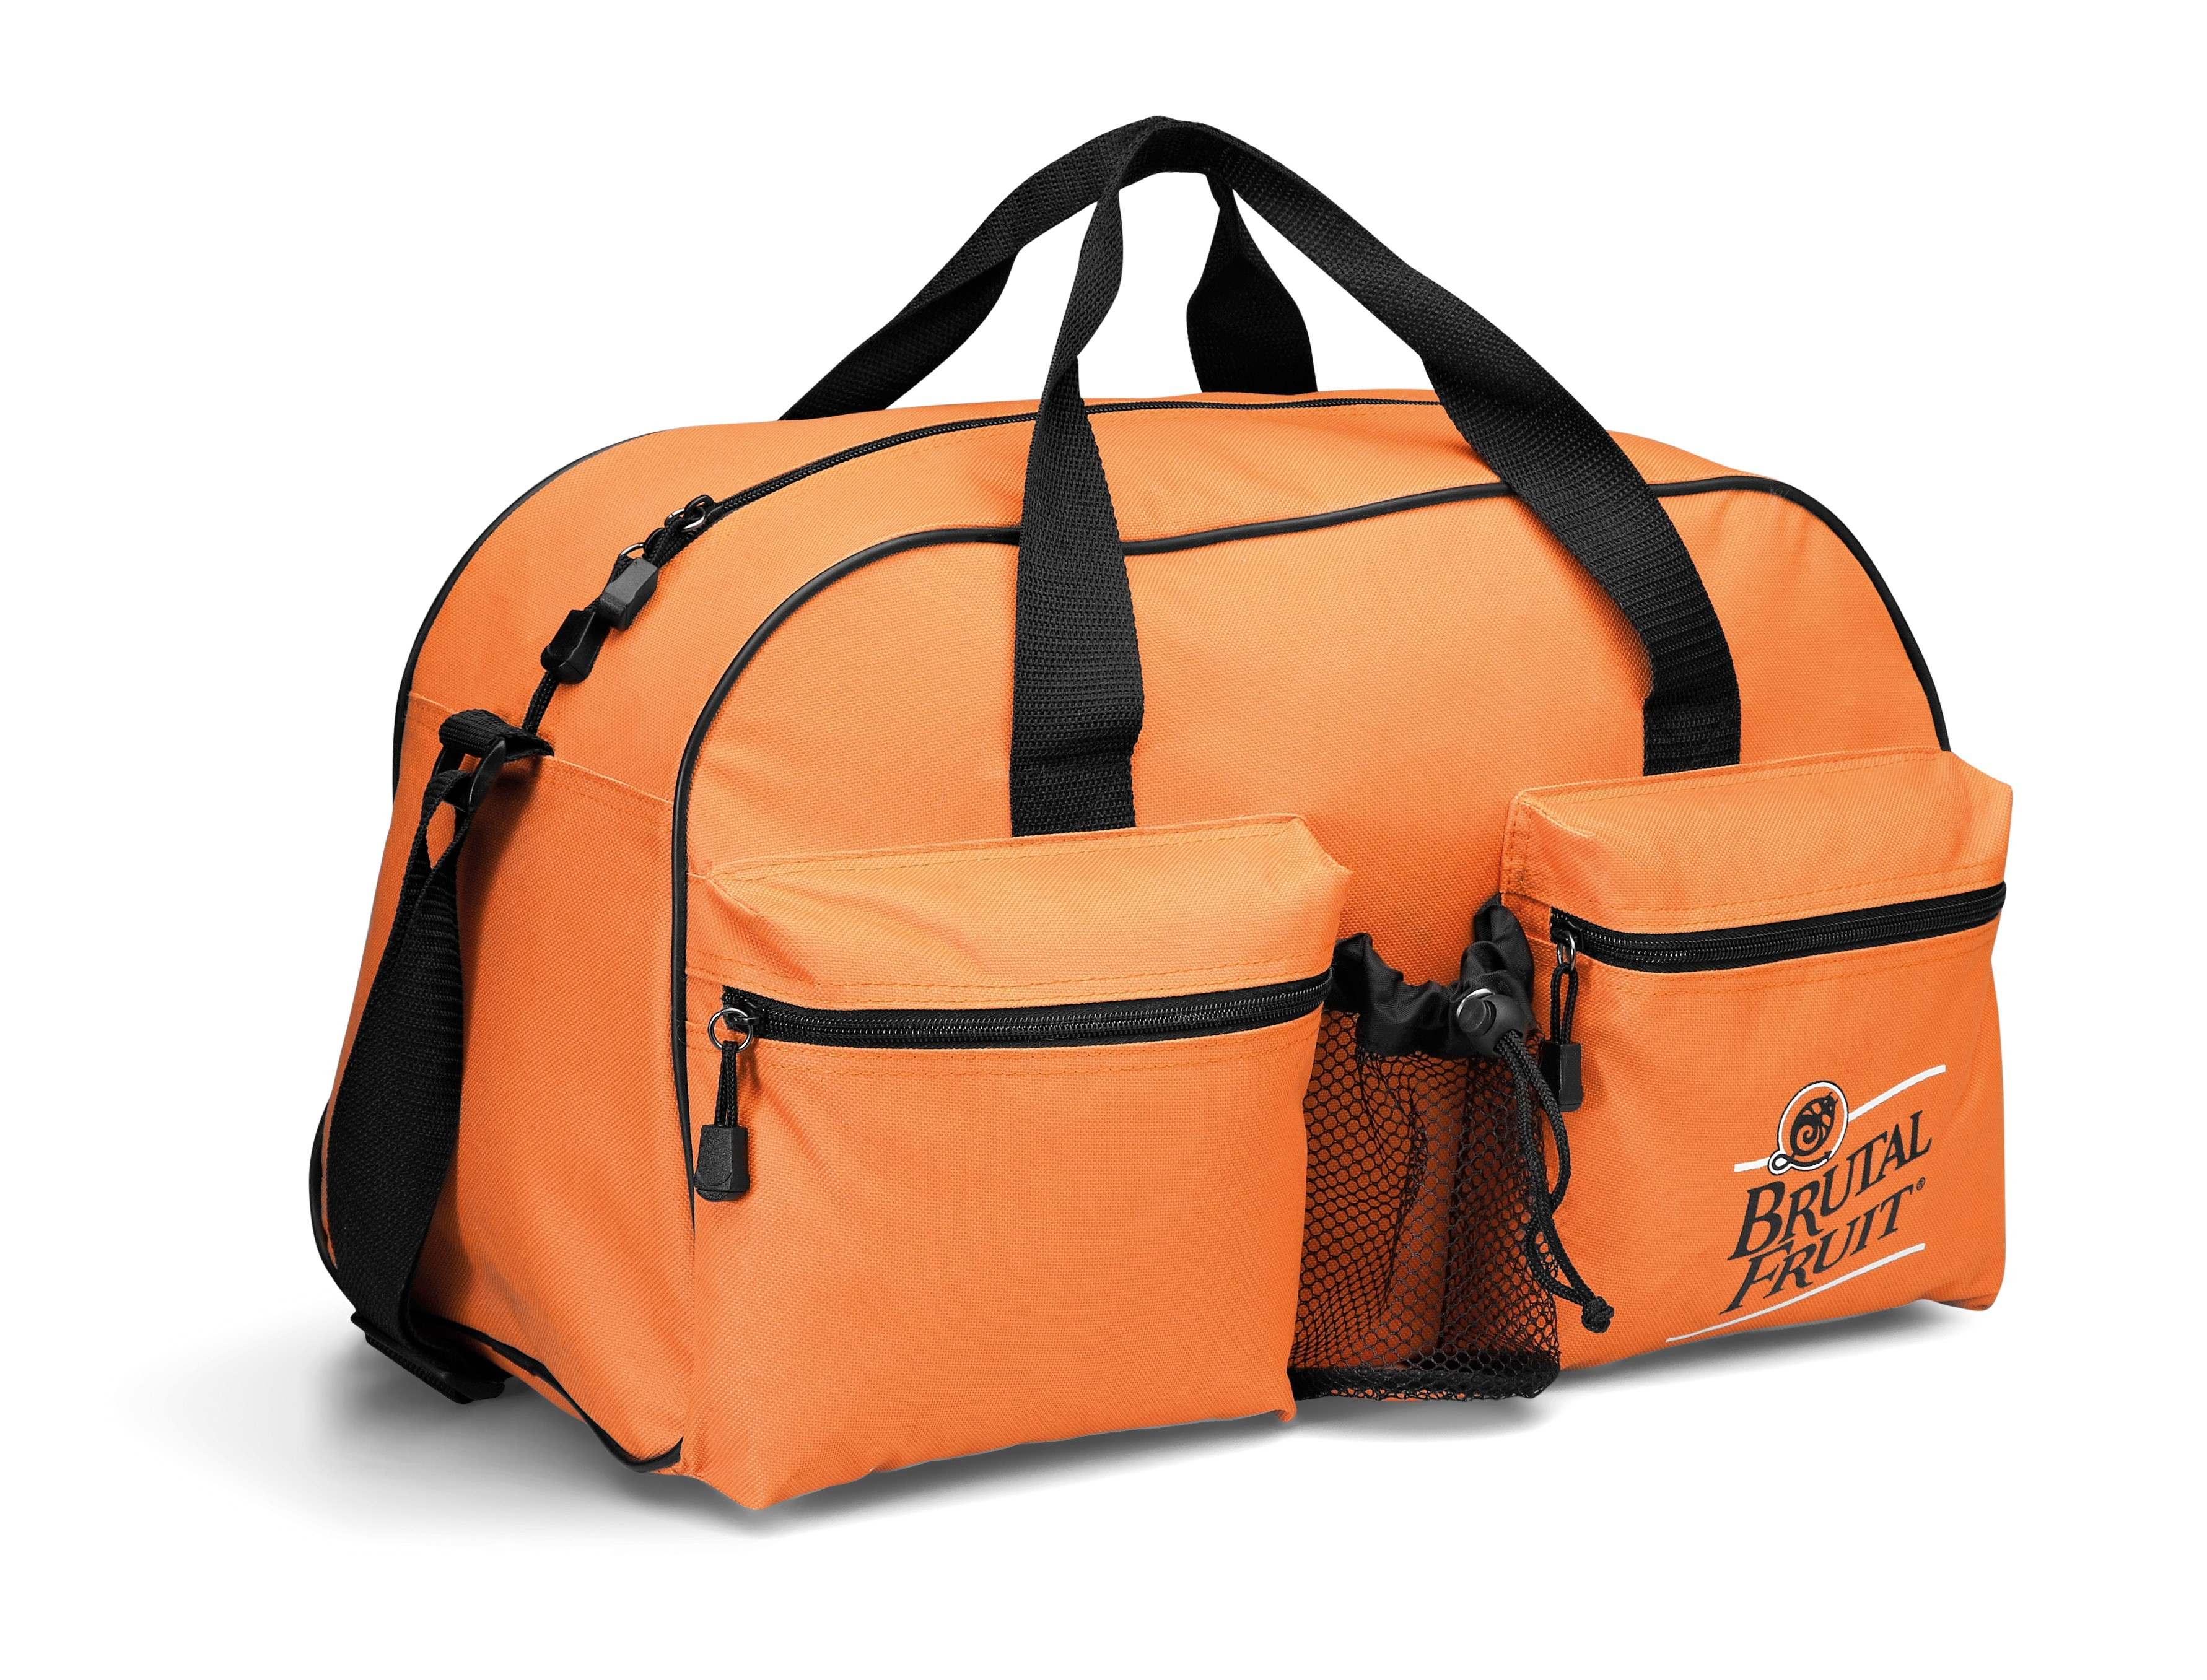 columbia sports bag orange only bag 3542 o. Black Bedroom Furniture Sets. Home Design Ideas